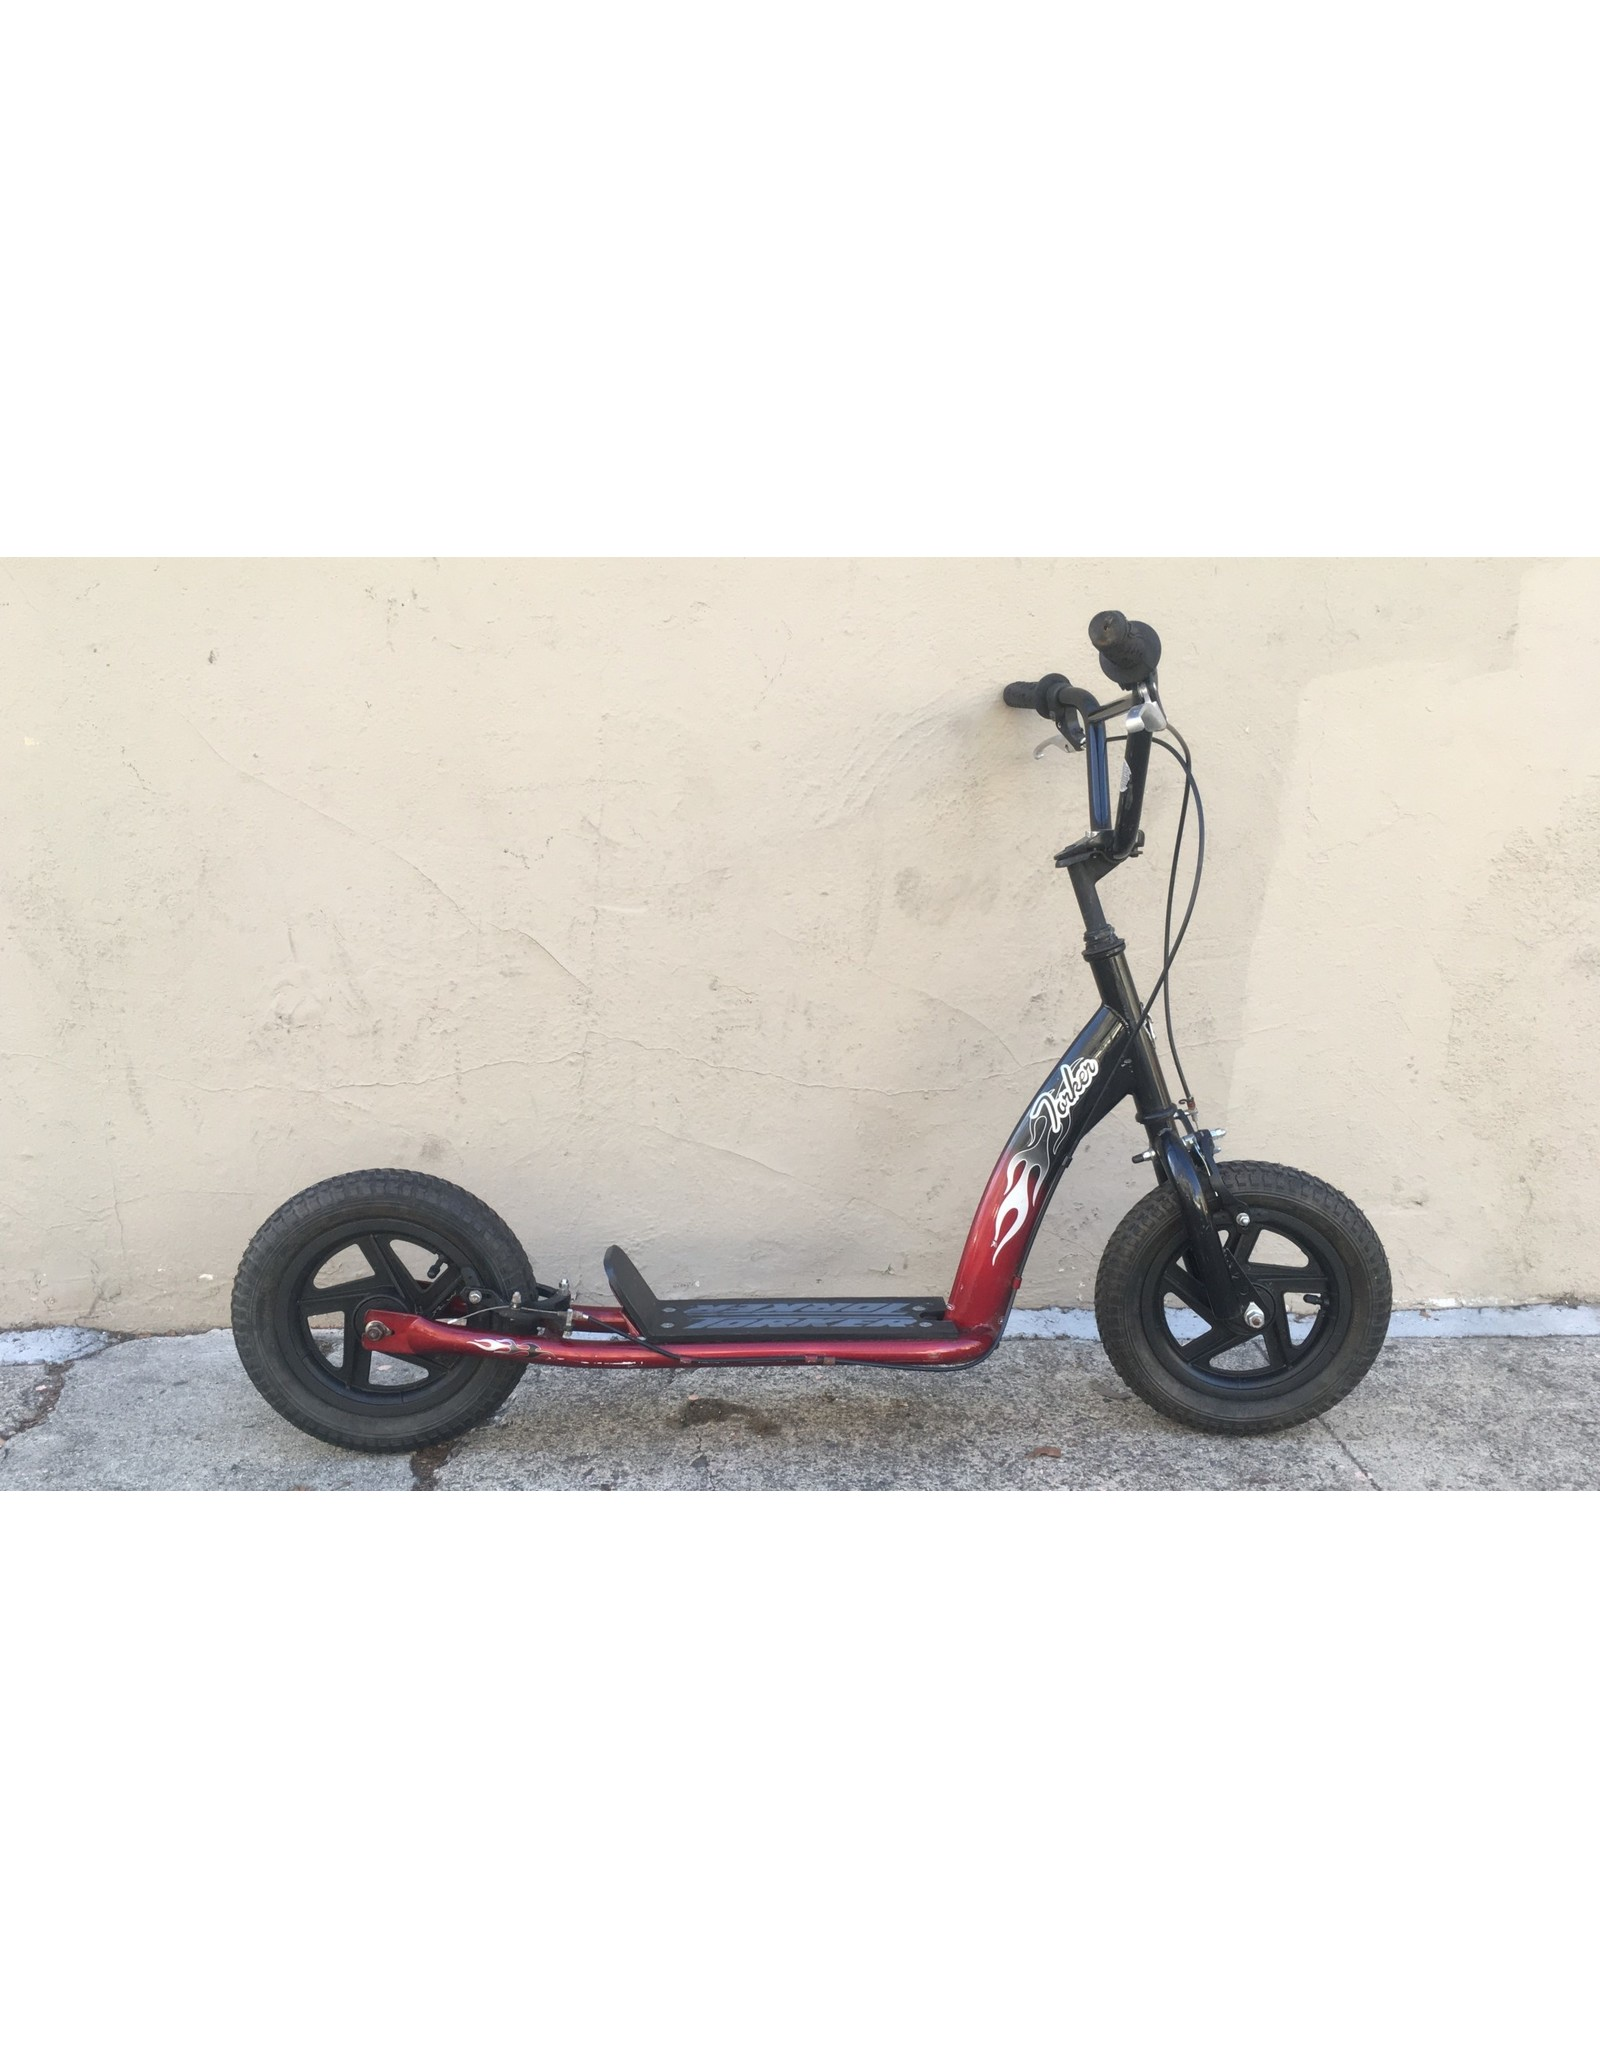 Torker Torker Scooter, 12 Inches, Red & Black